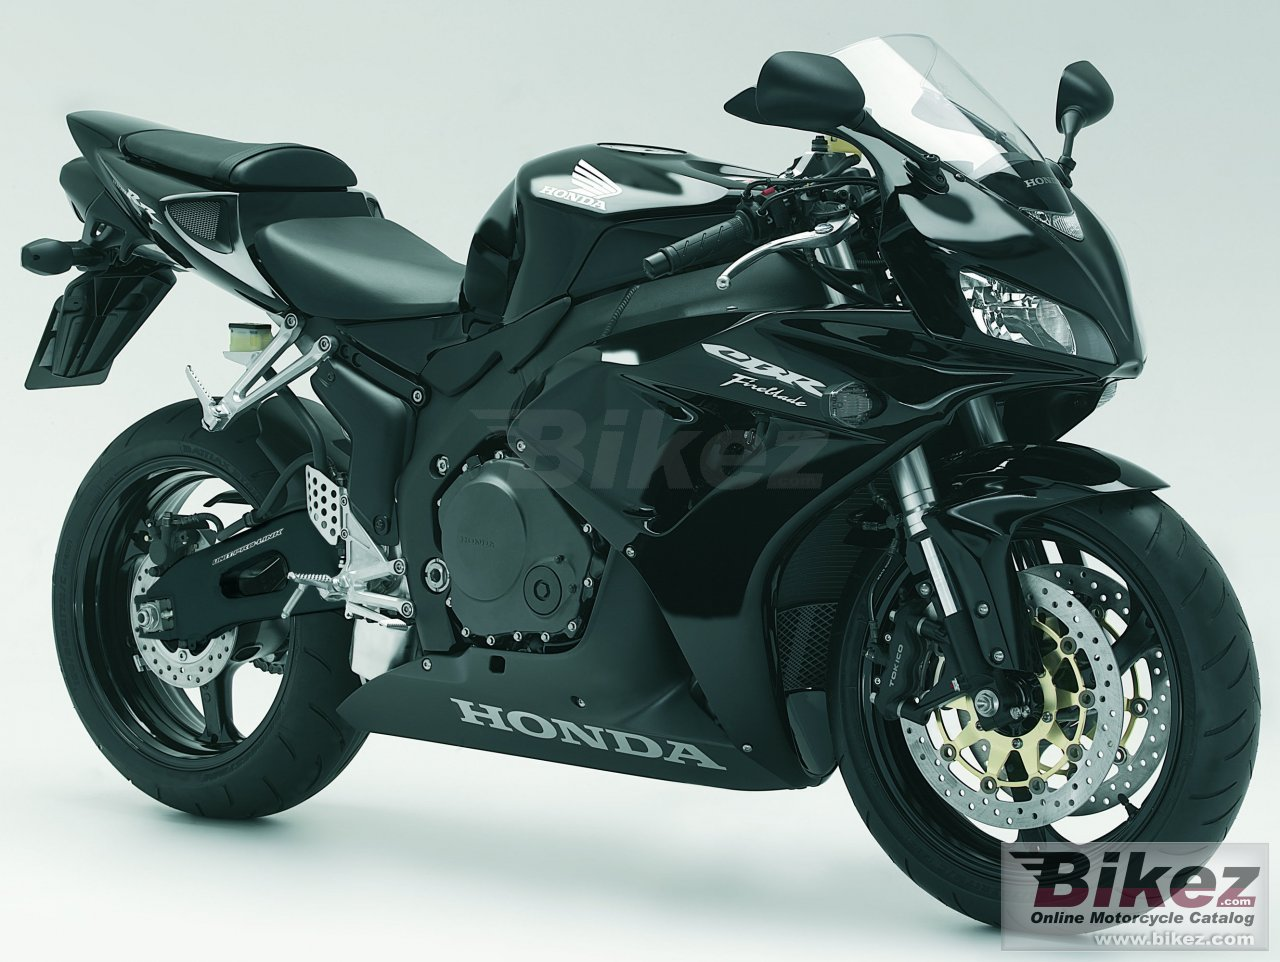 Big Honda cbr 1000 rr picture and wallpaper from Bikez.com